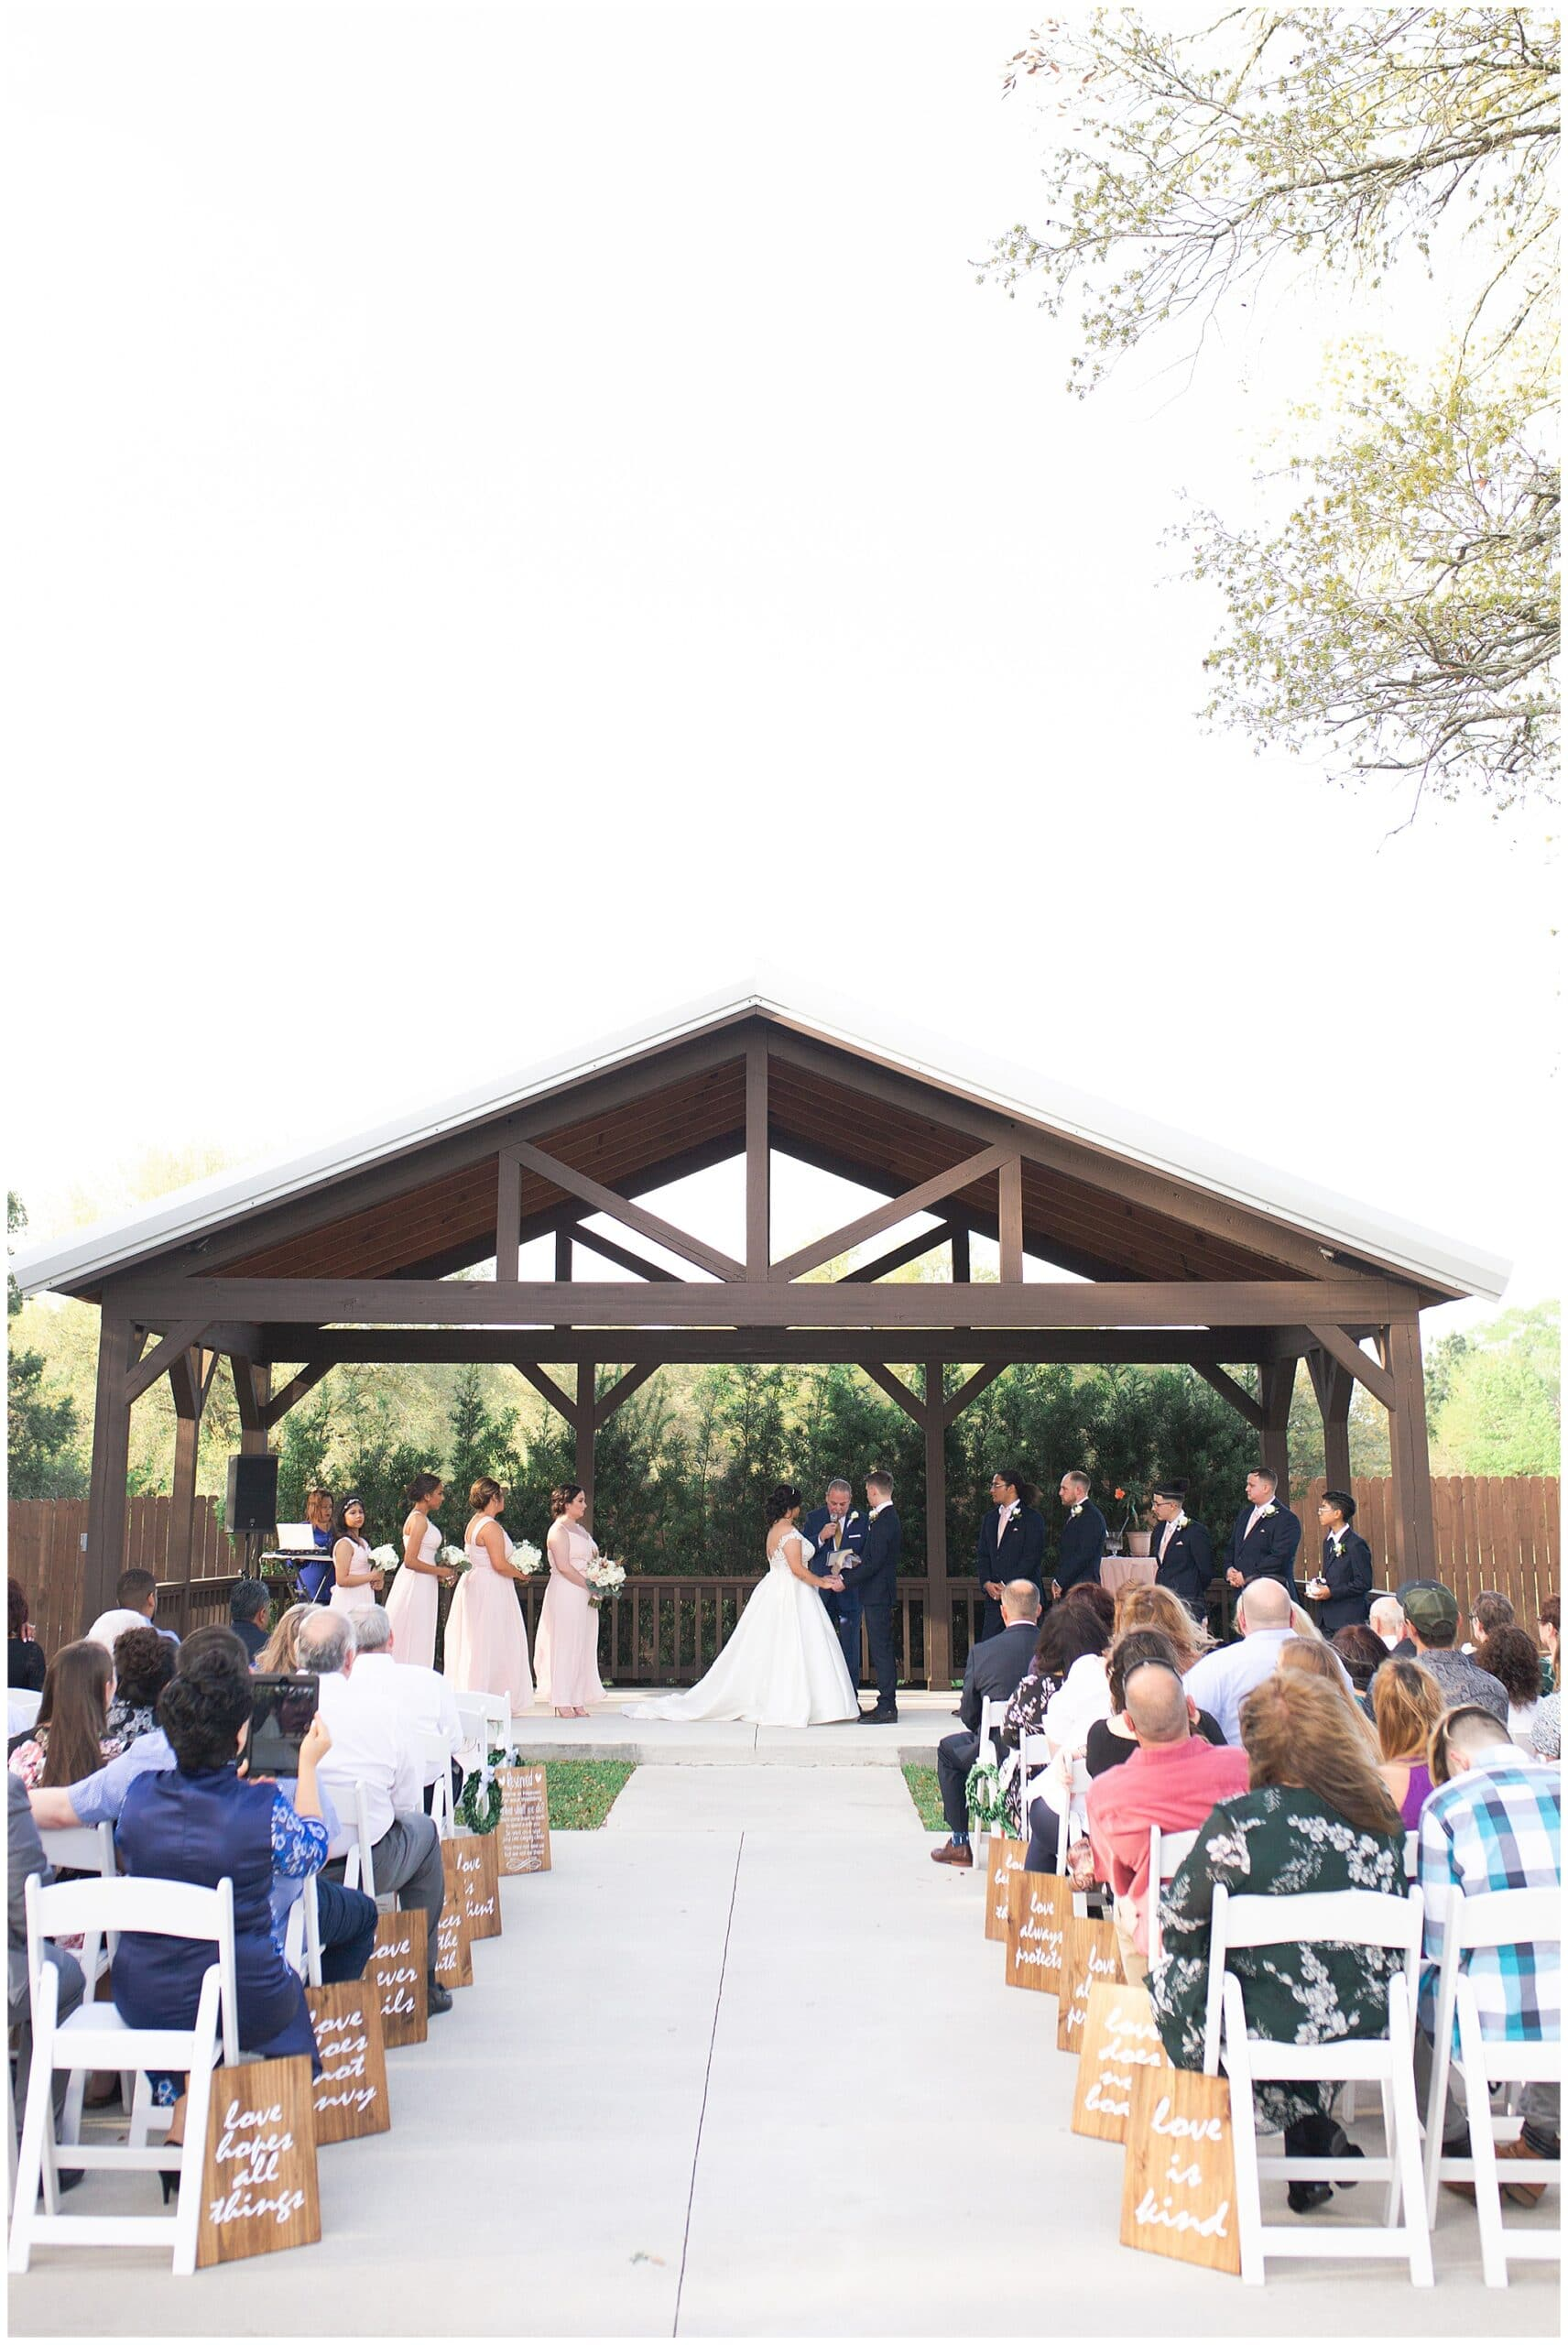 wedding ceremony at Bridal Oaks in Cypress Texas by Houston wedding photographer Swish and Click Photography